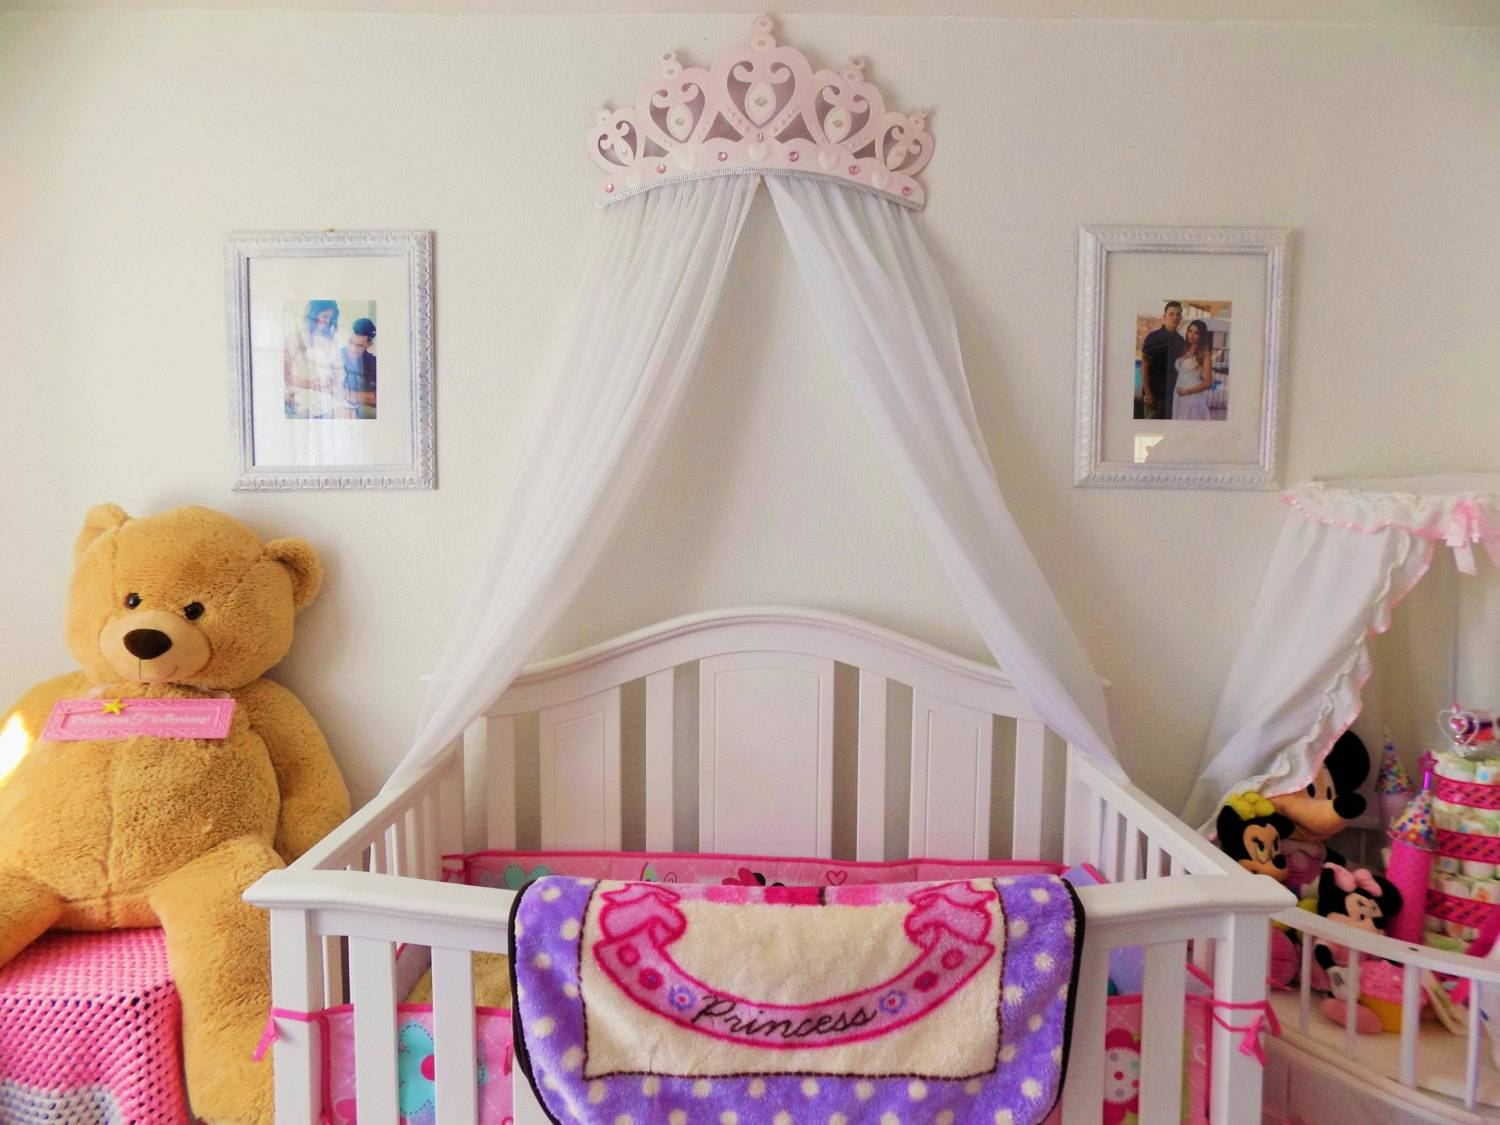 Crib Canopy Bed Crown Pink Princess Wall Decor Throughout Recent 3D Princess Crown Wall Art Decor (View 10 of 20)